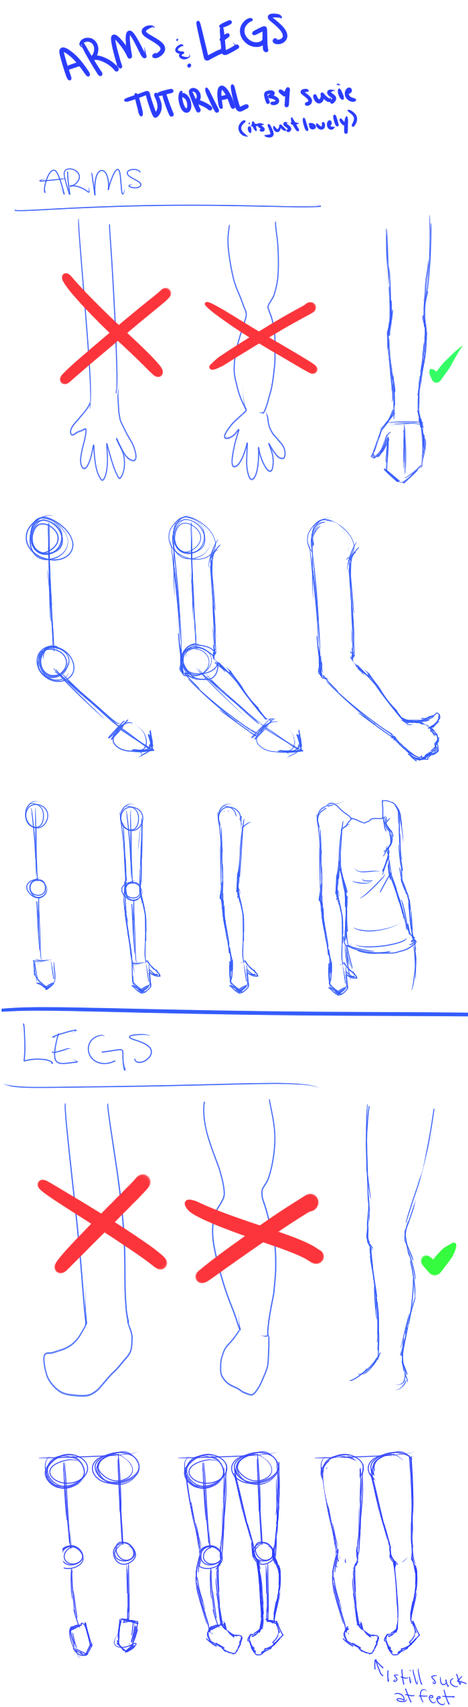 ARMS n' LEGS Tutorial by ItsJustLovely